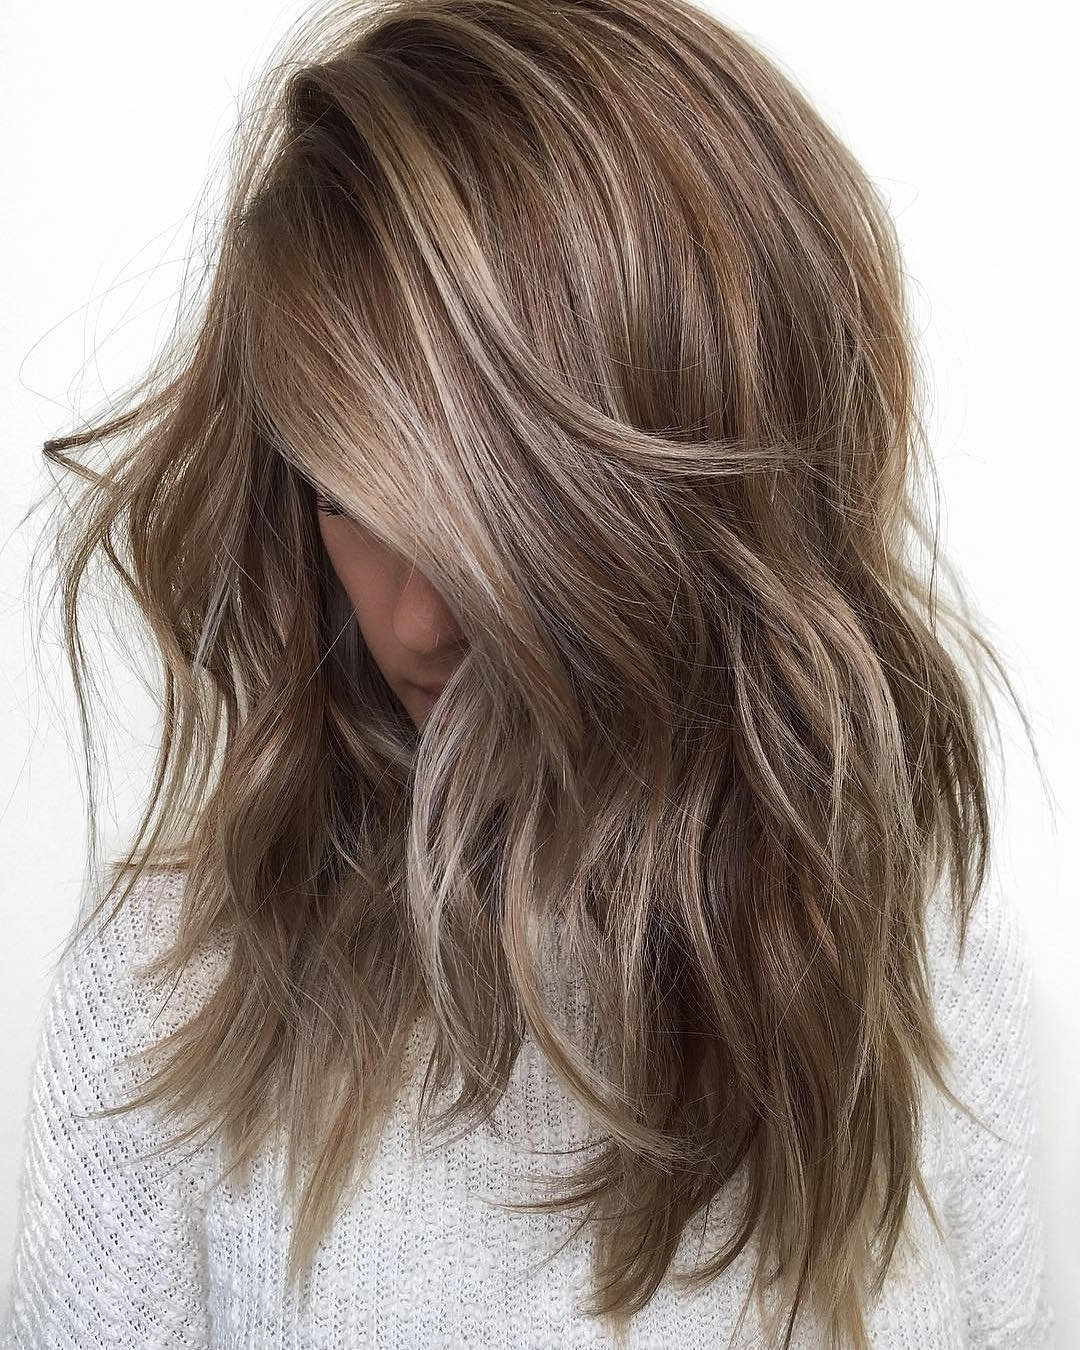 10 Balayage Ombre Hair Styles For Shoulder Length Hair, Women Regarding Preferred Gently Angled Waves Blonde Hairstyles (View 14 of 20)